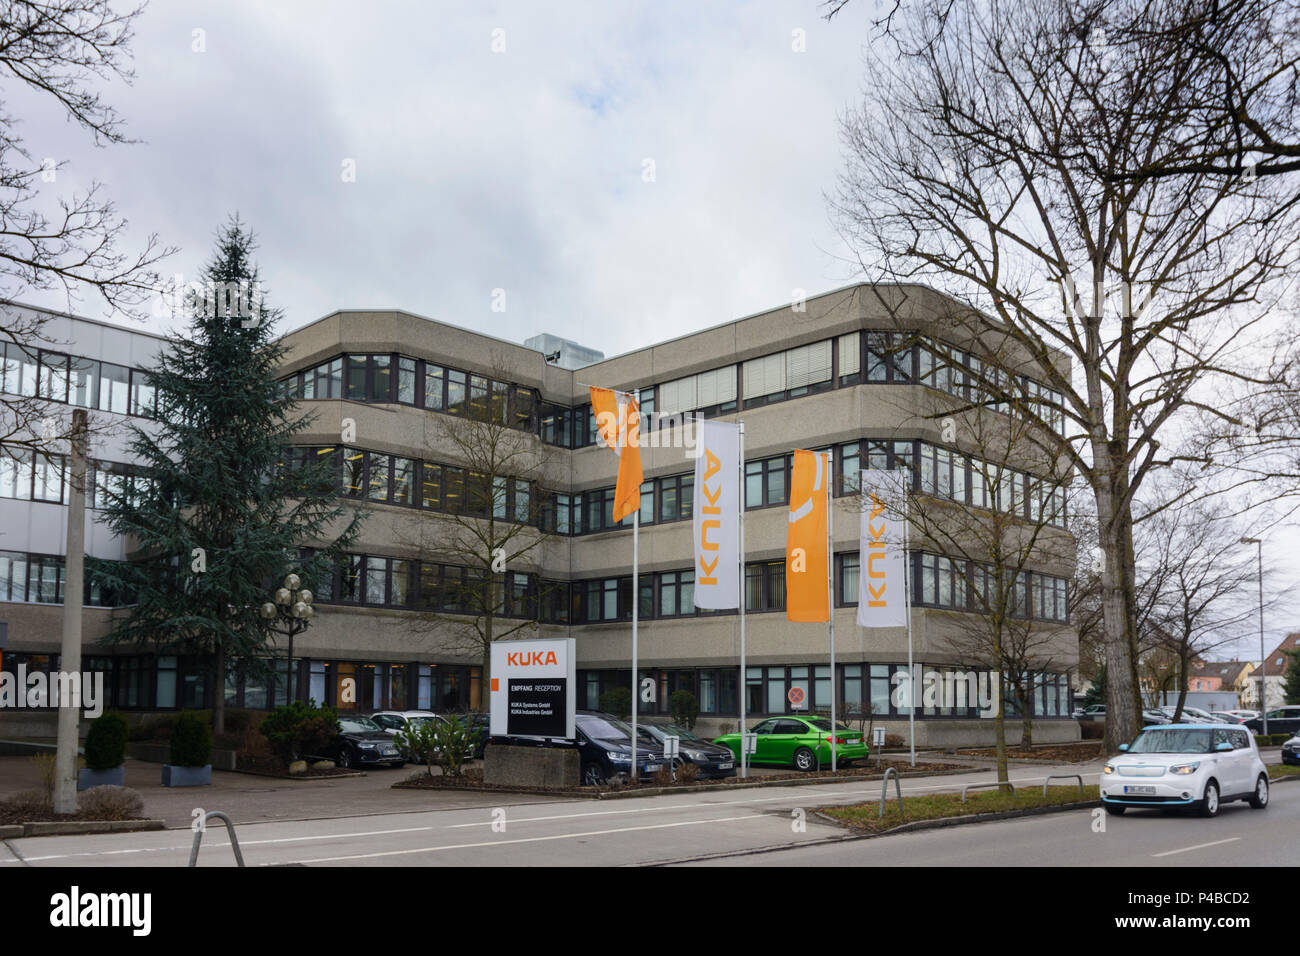 Augsburg, company Kuka reception for KUKA Industries, KUKA Systems, Swabia, Bavaria, Germany - Stock Image